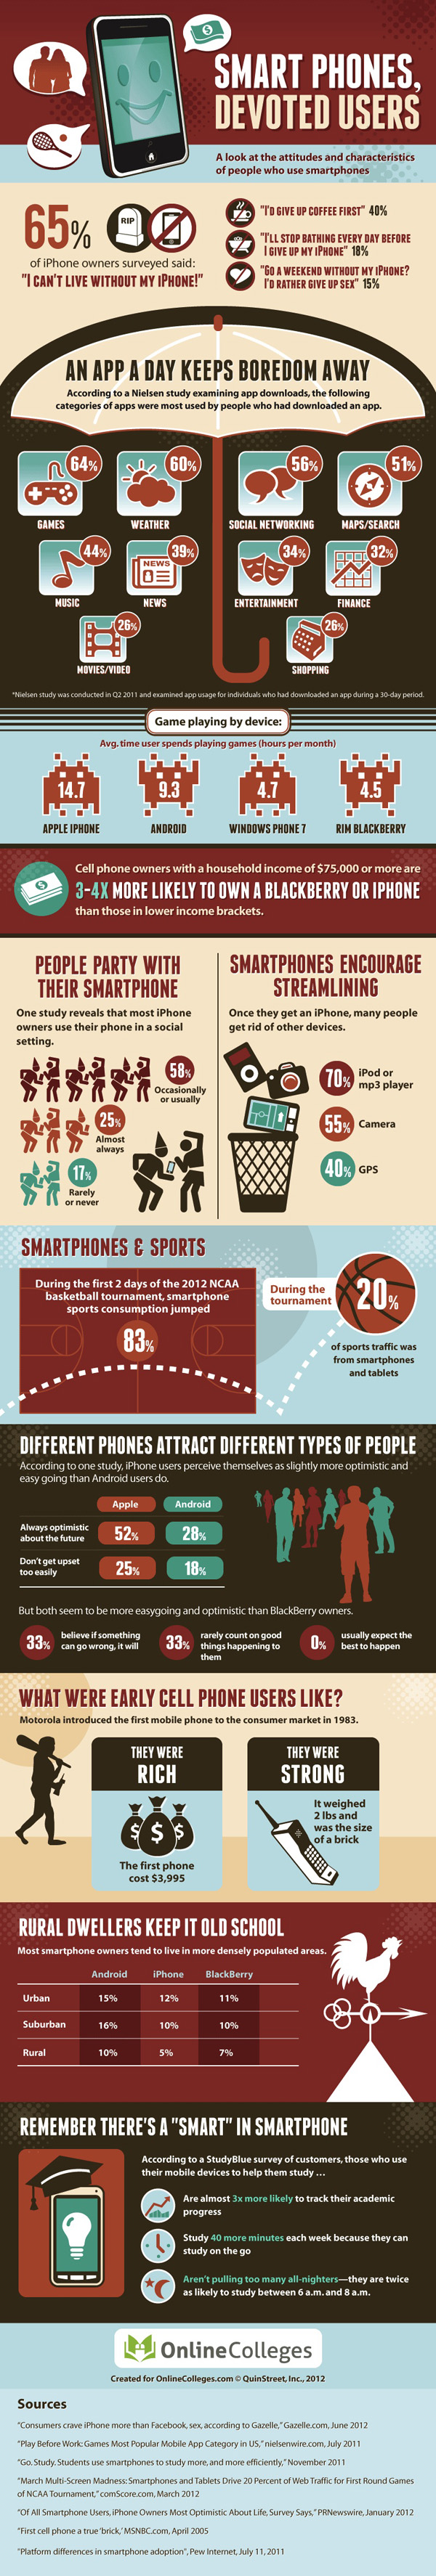 Smartphone Users Profile-Infographic